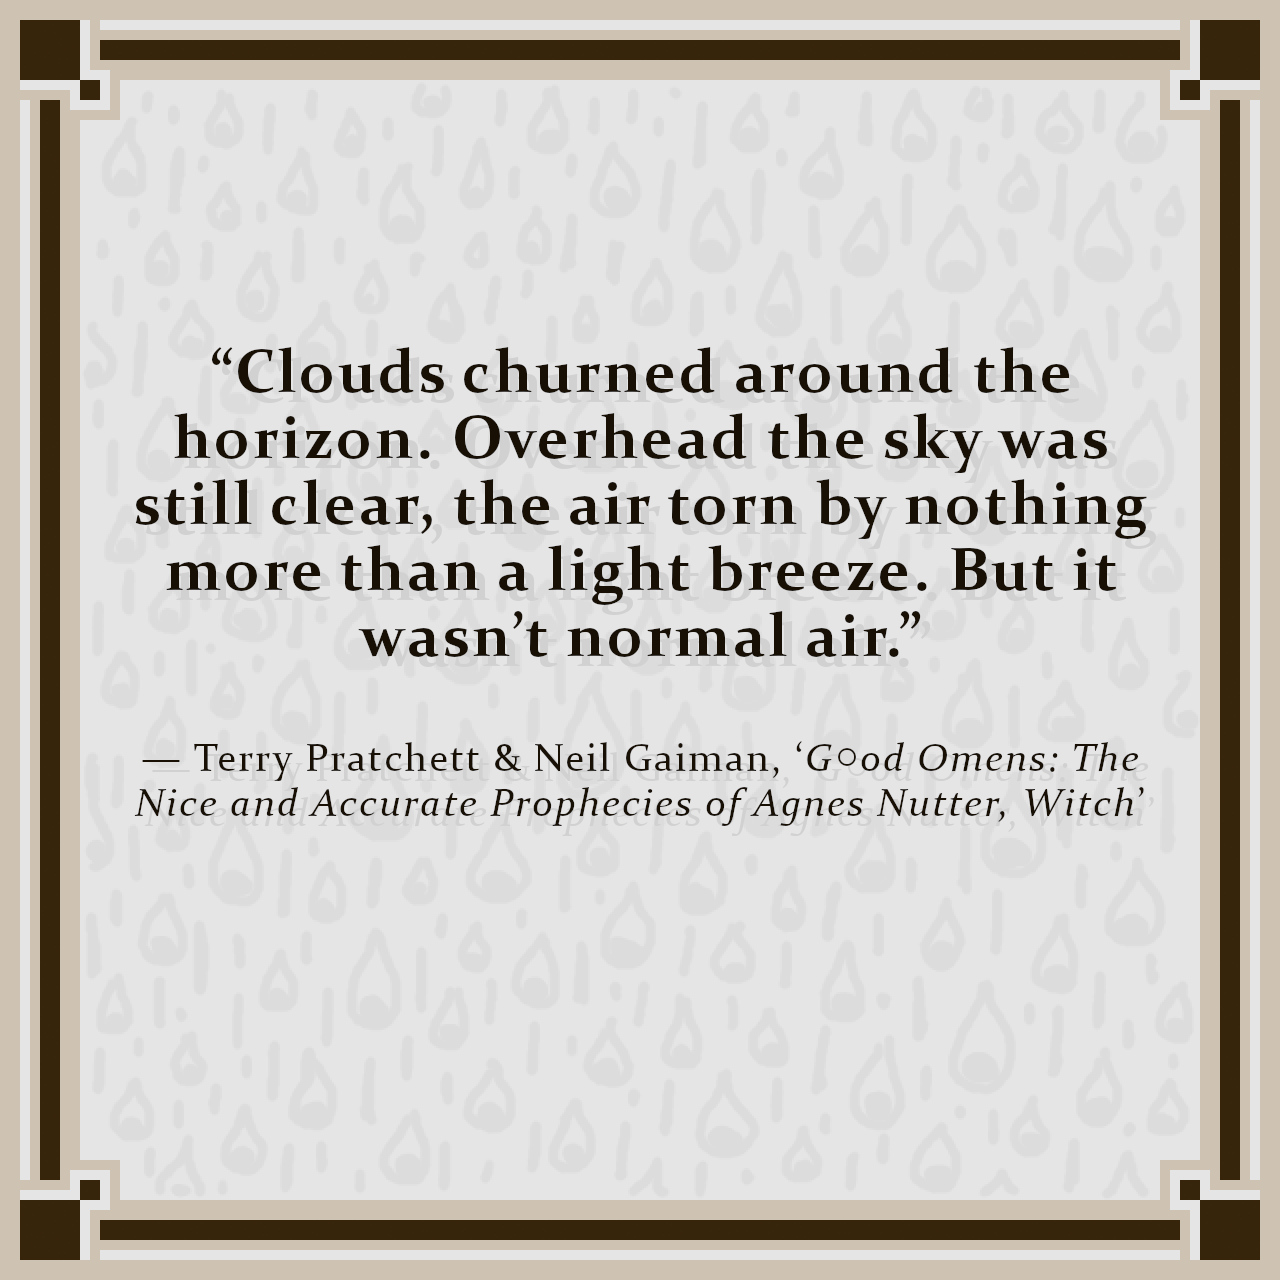 """""""Clouds churned around the horizon. Overhead the sky was still clear, the air torn by nothing more than a light breeze. But it wasn't normal air."""" — Terry Pratchett & Neil Gaiman, 'G○od Omens: The Nice and Accurate Prophecies of Agnes Nutter, Witch'"""